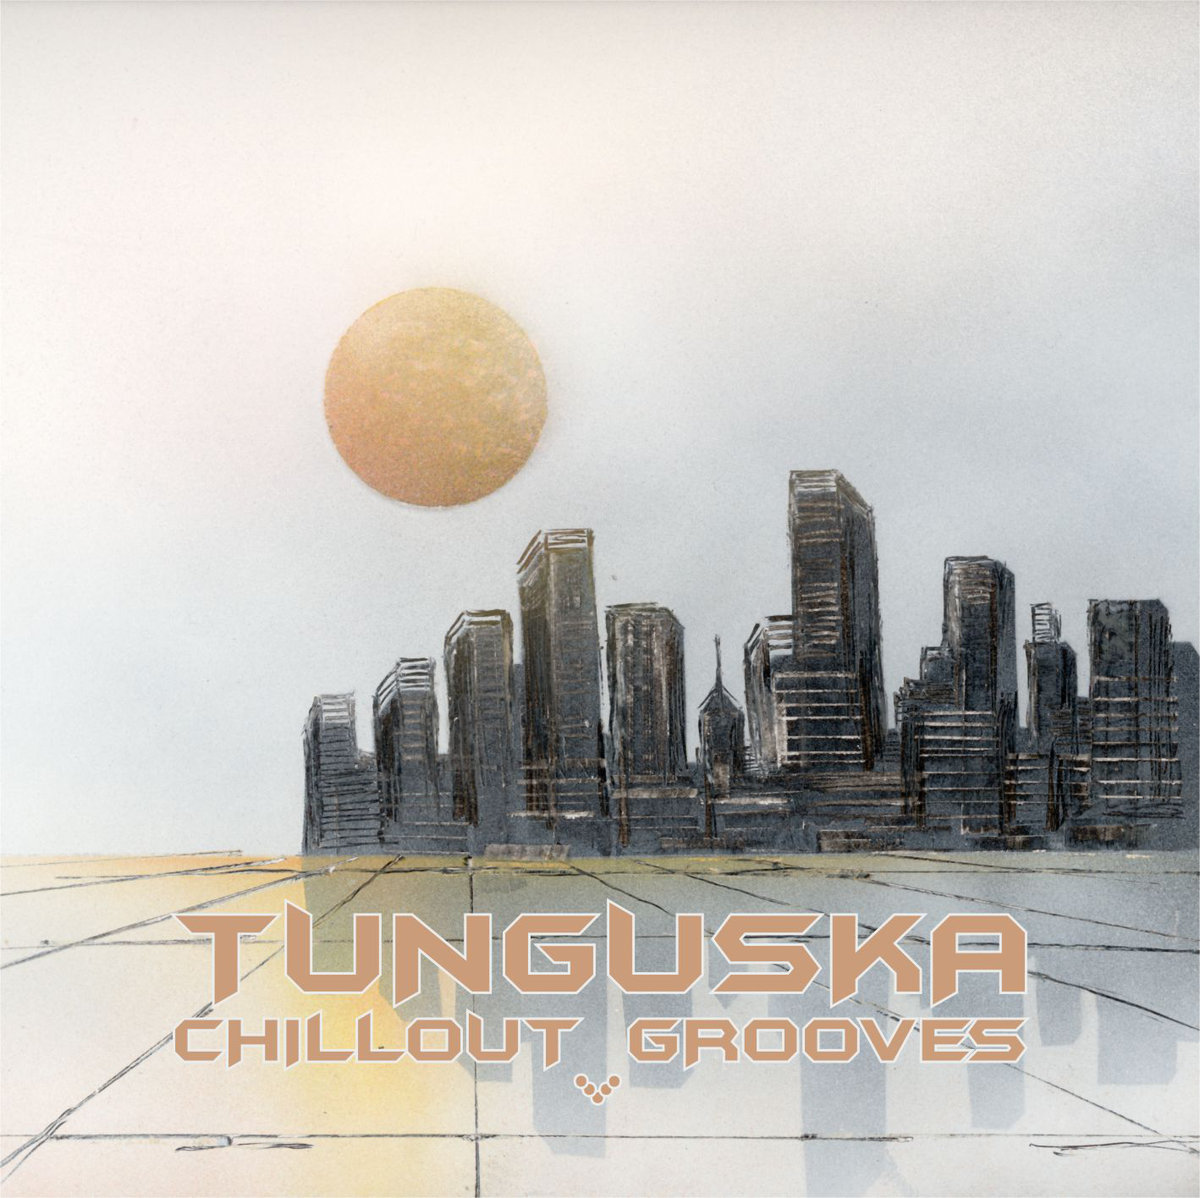 MoVoX - Who Are You? @ 'Tunguska Chillout Grooves - Volume 5' album (electronic, ambient)